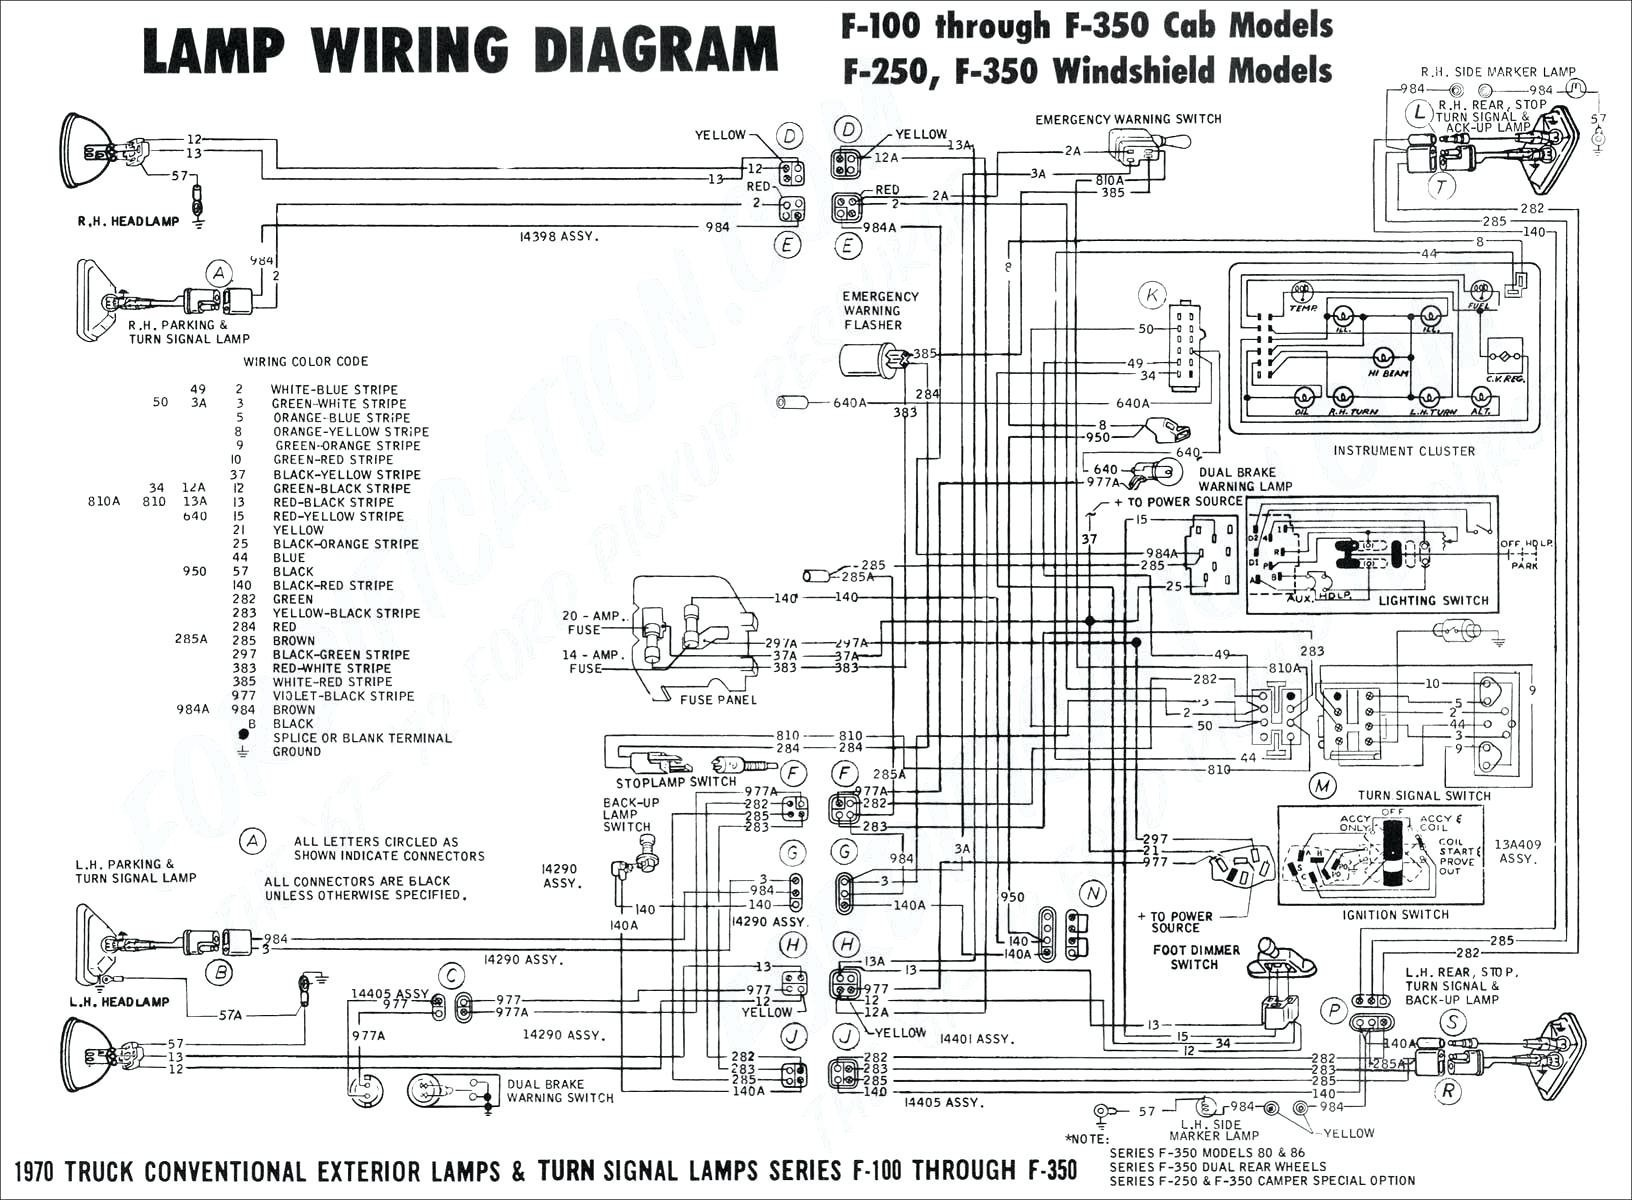 Wiring Diagrams For Turn Signal Best Stop Turn Tail Light Wiring Diagram Beautiful 1979 Ford F150 Tail